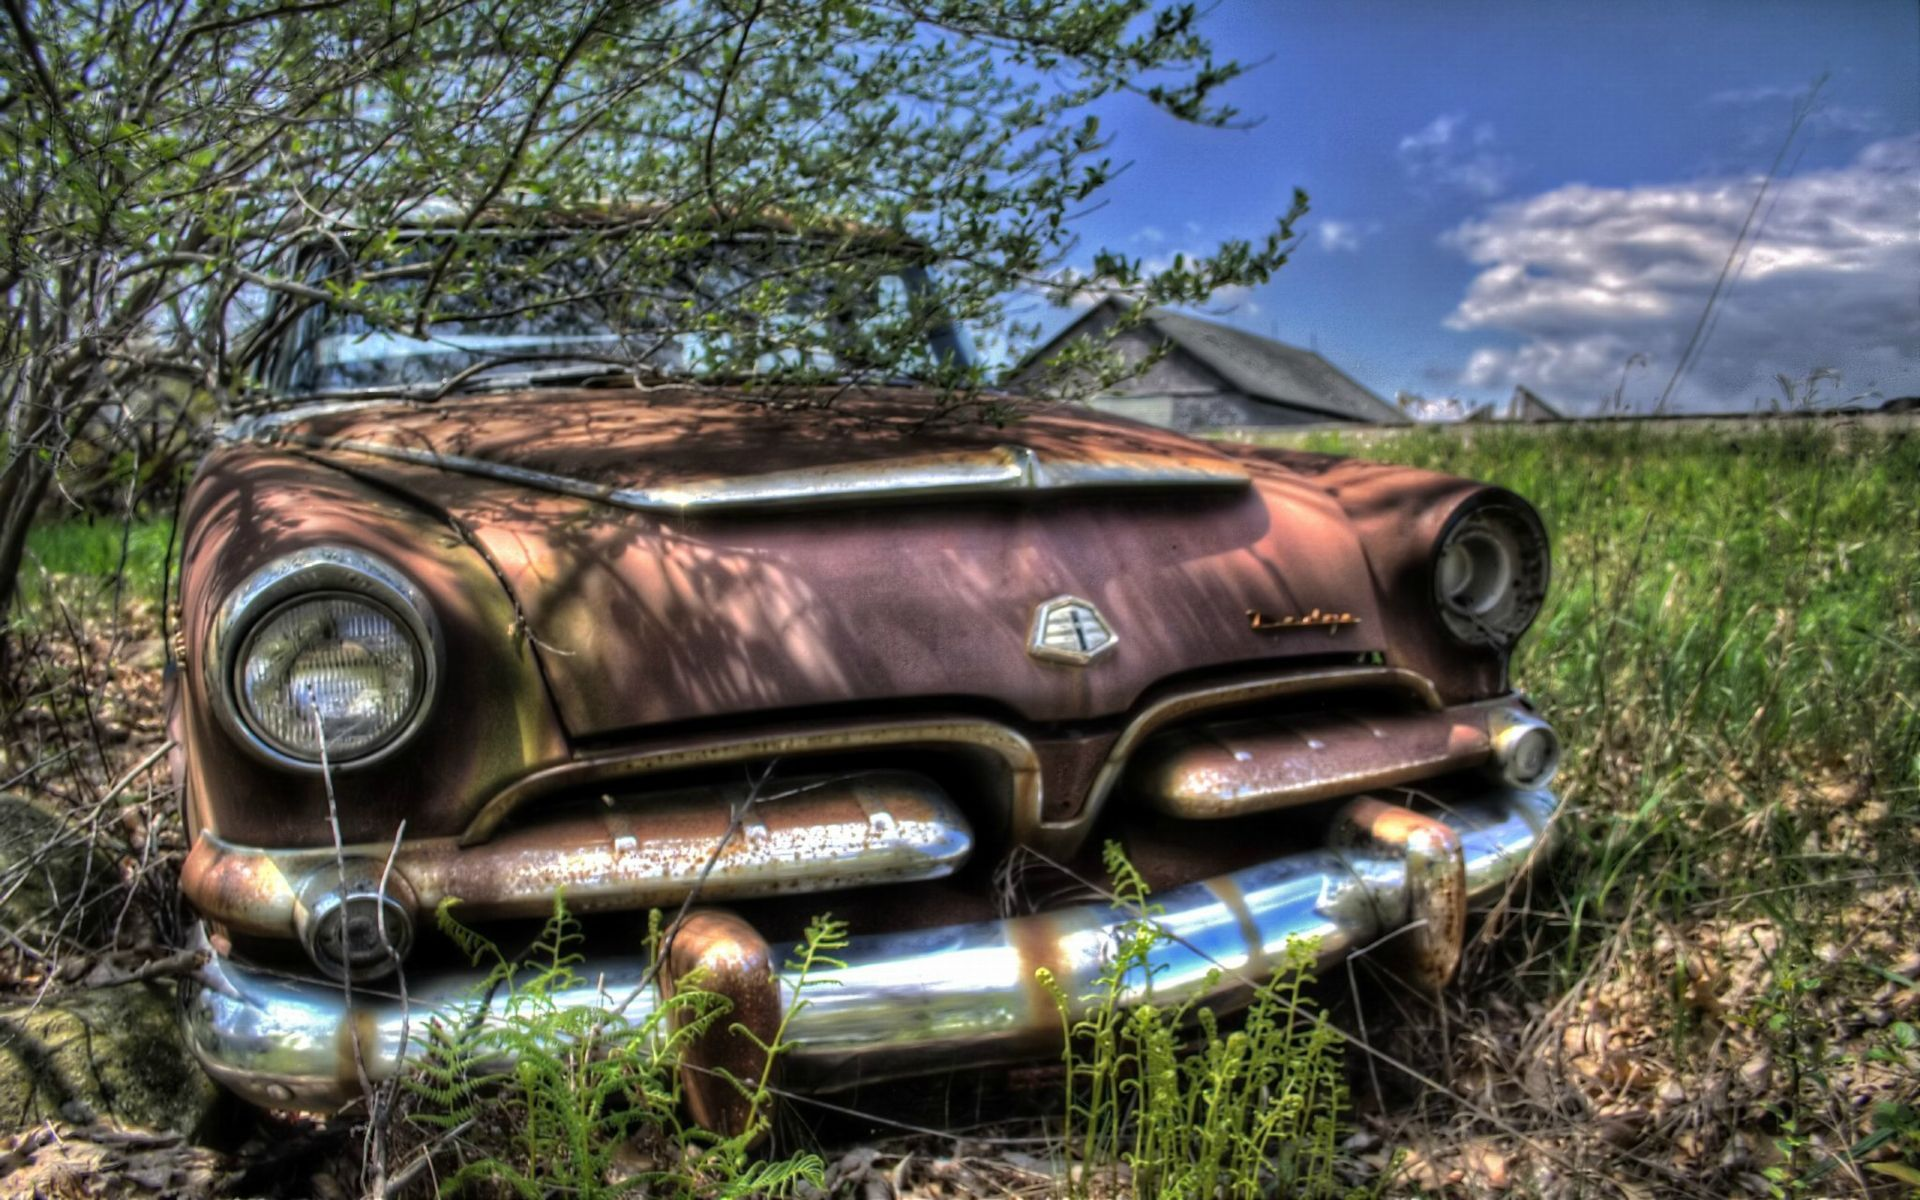 Rusted Dodge Abandoned Cars Cars Trucks Old Classic Cars